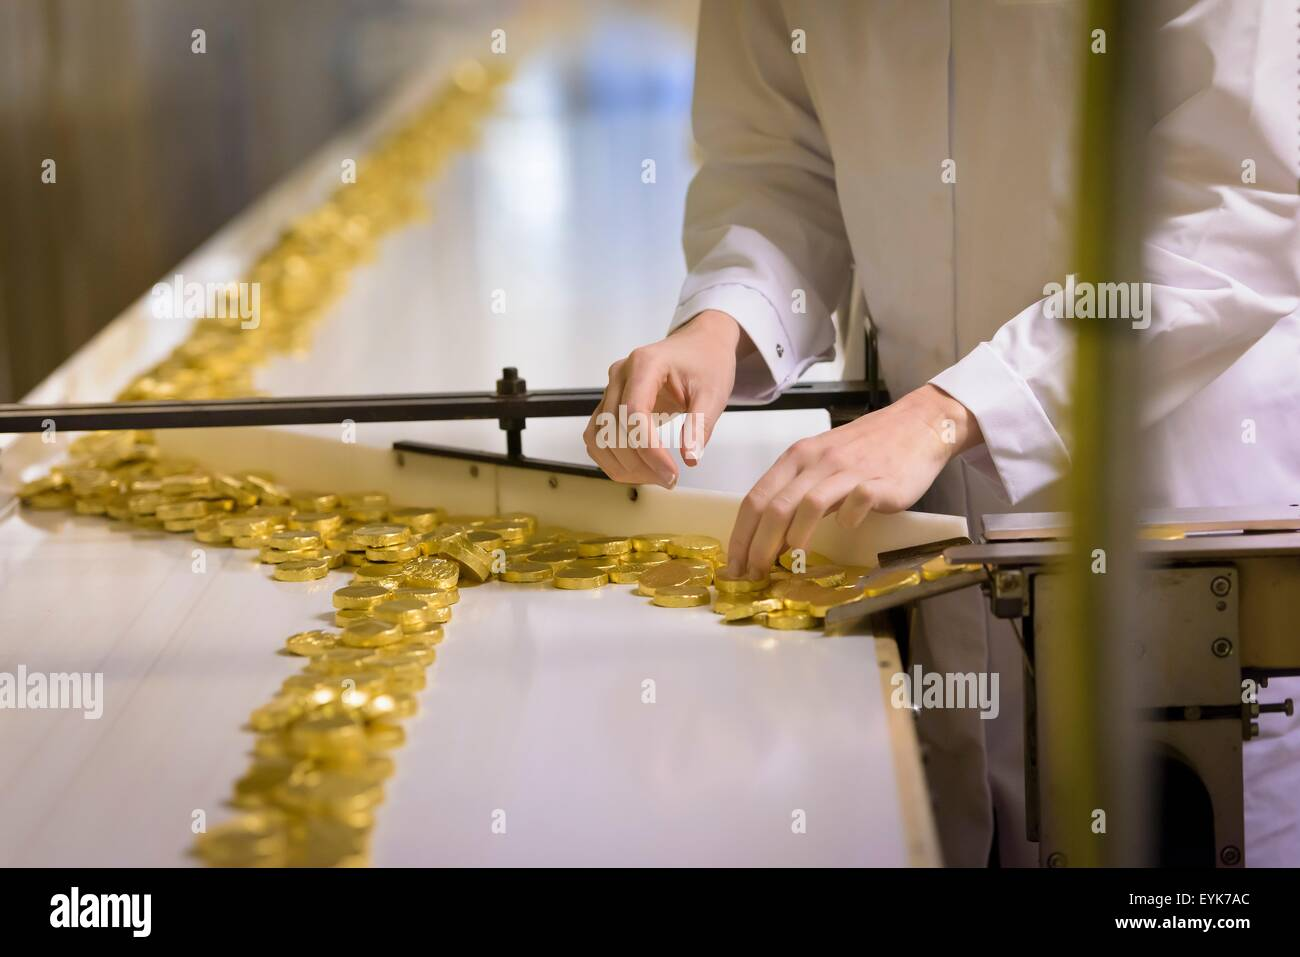 Worker wrapping chocolates on production line in chocolate factory - Stock Image